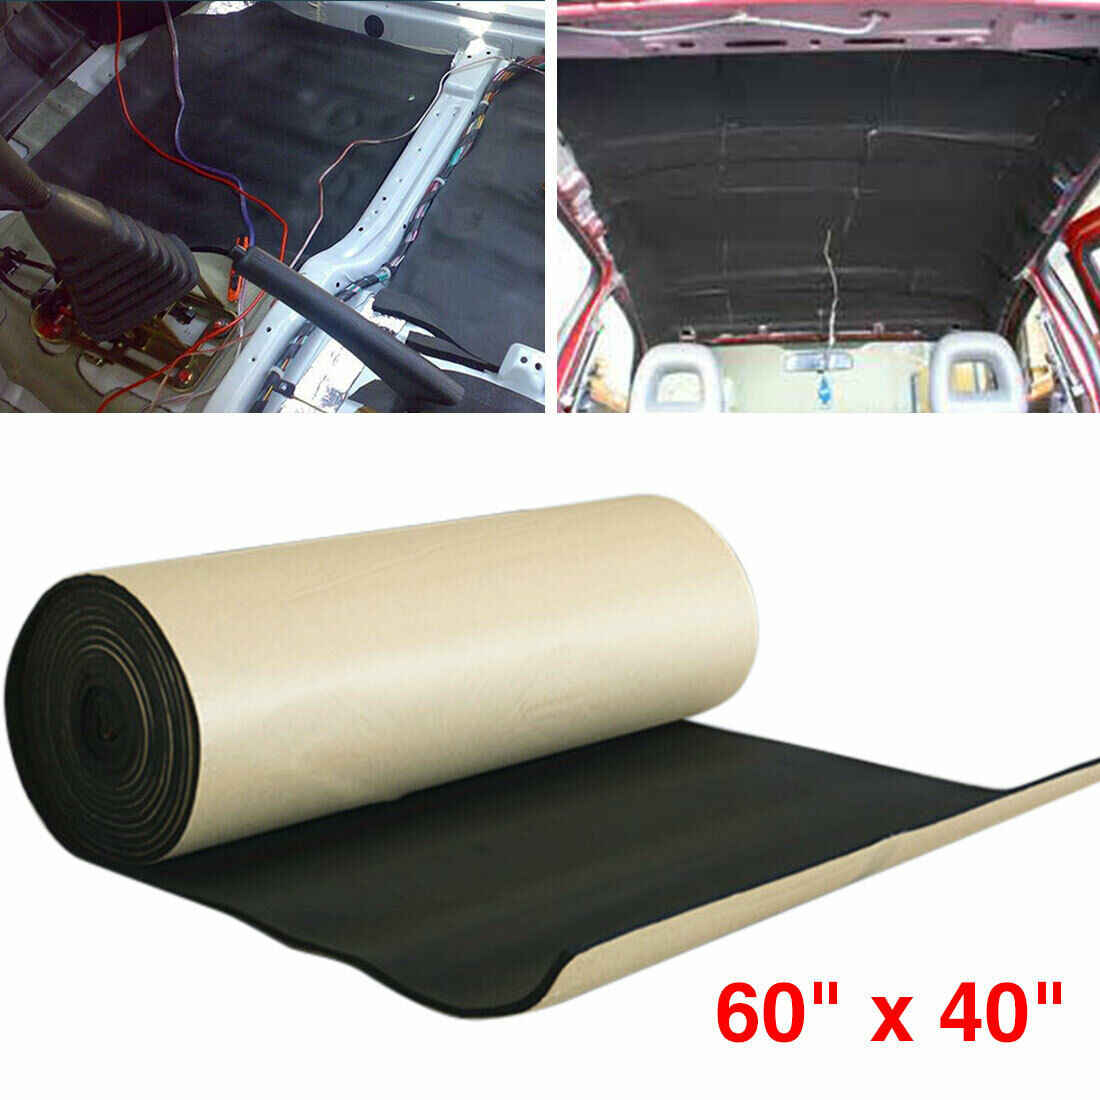 Audio Stereo Sound Proof Kebisingan Mematikan Lembar Panas Isolasi Shield Thermal Block Sel Tertutup Interior Lantai